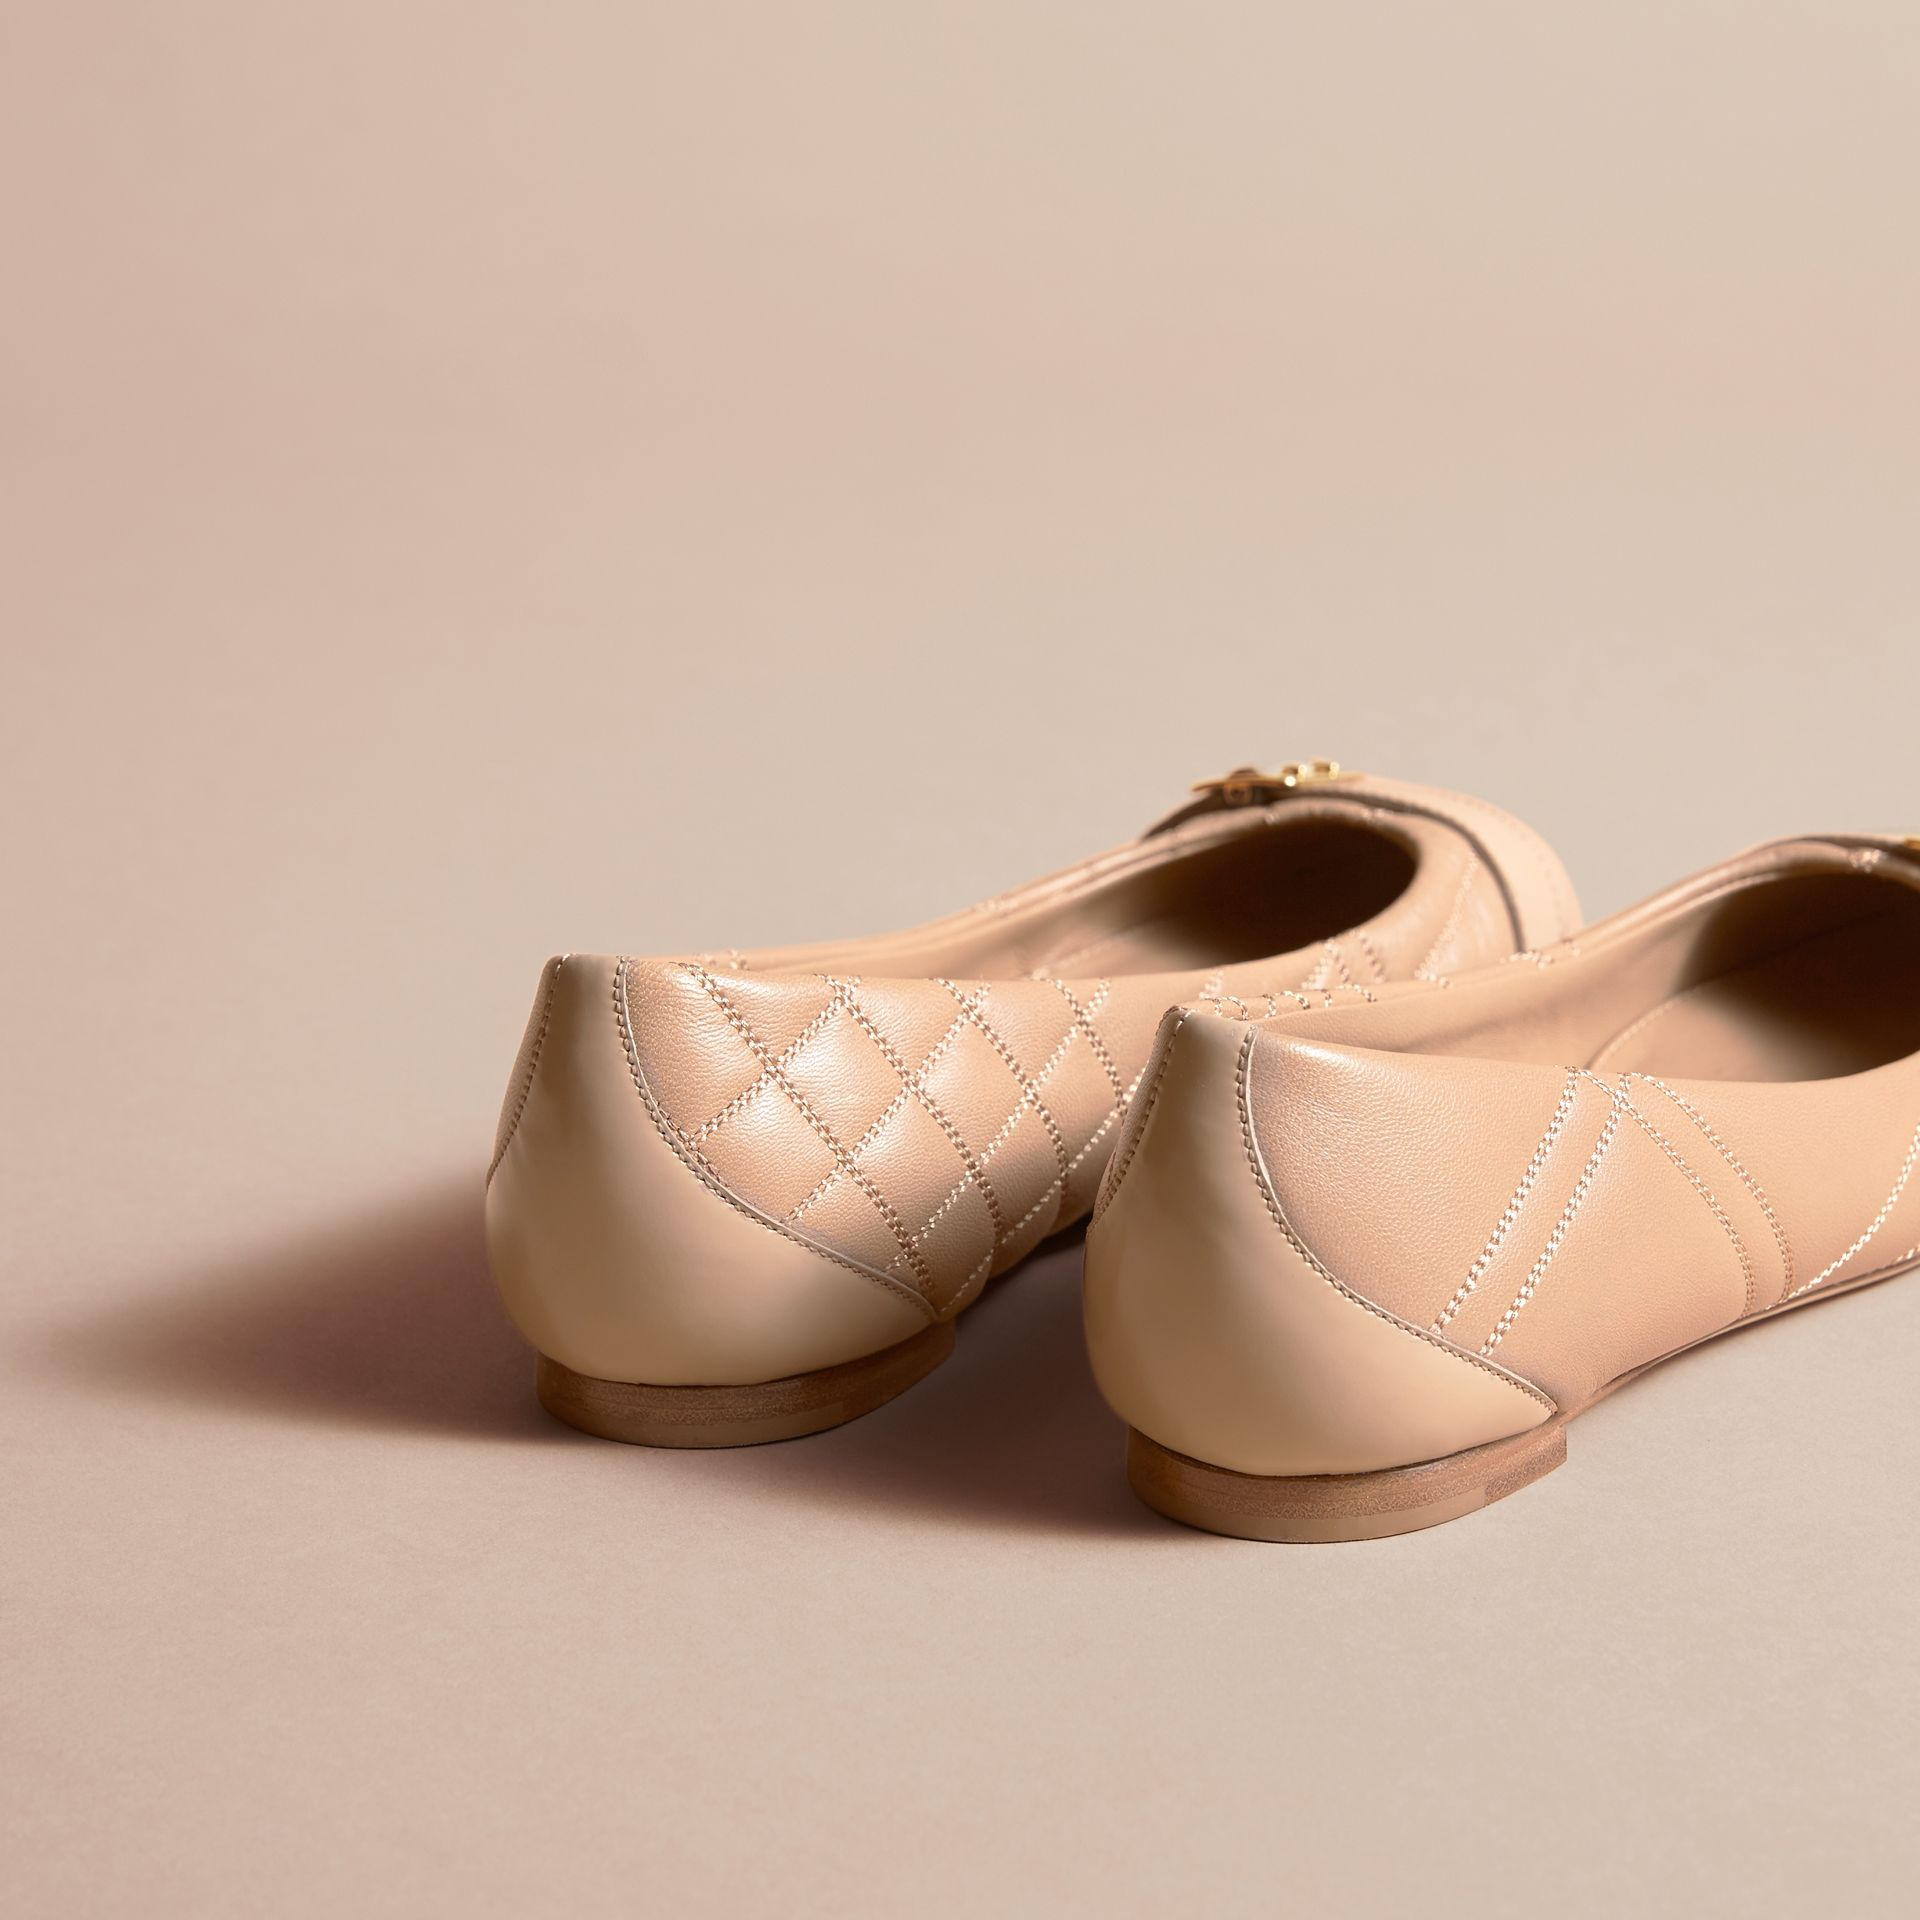 Buckle Detail Quilted Lambskin Leather Ballerinas in Honey - Women | Burberry Canada - gallery image 4